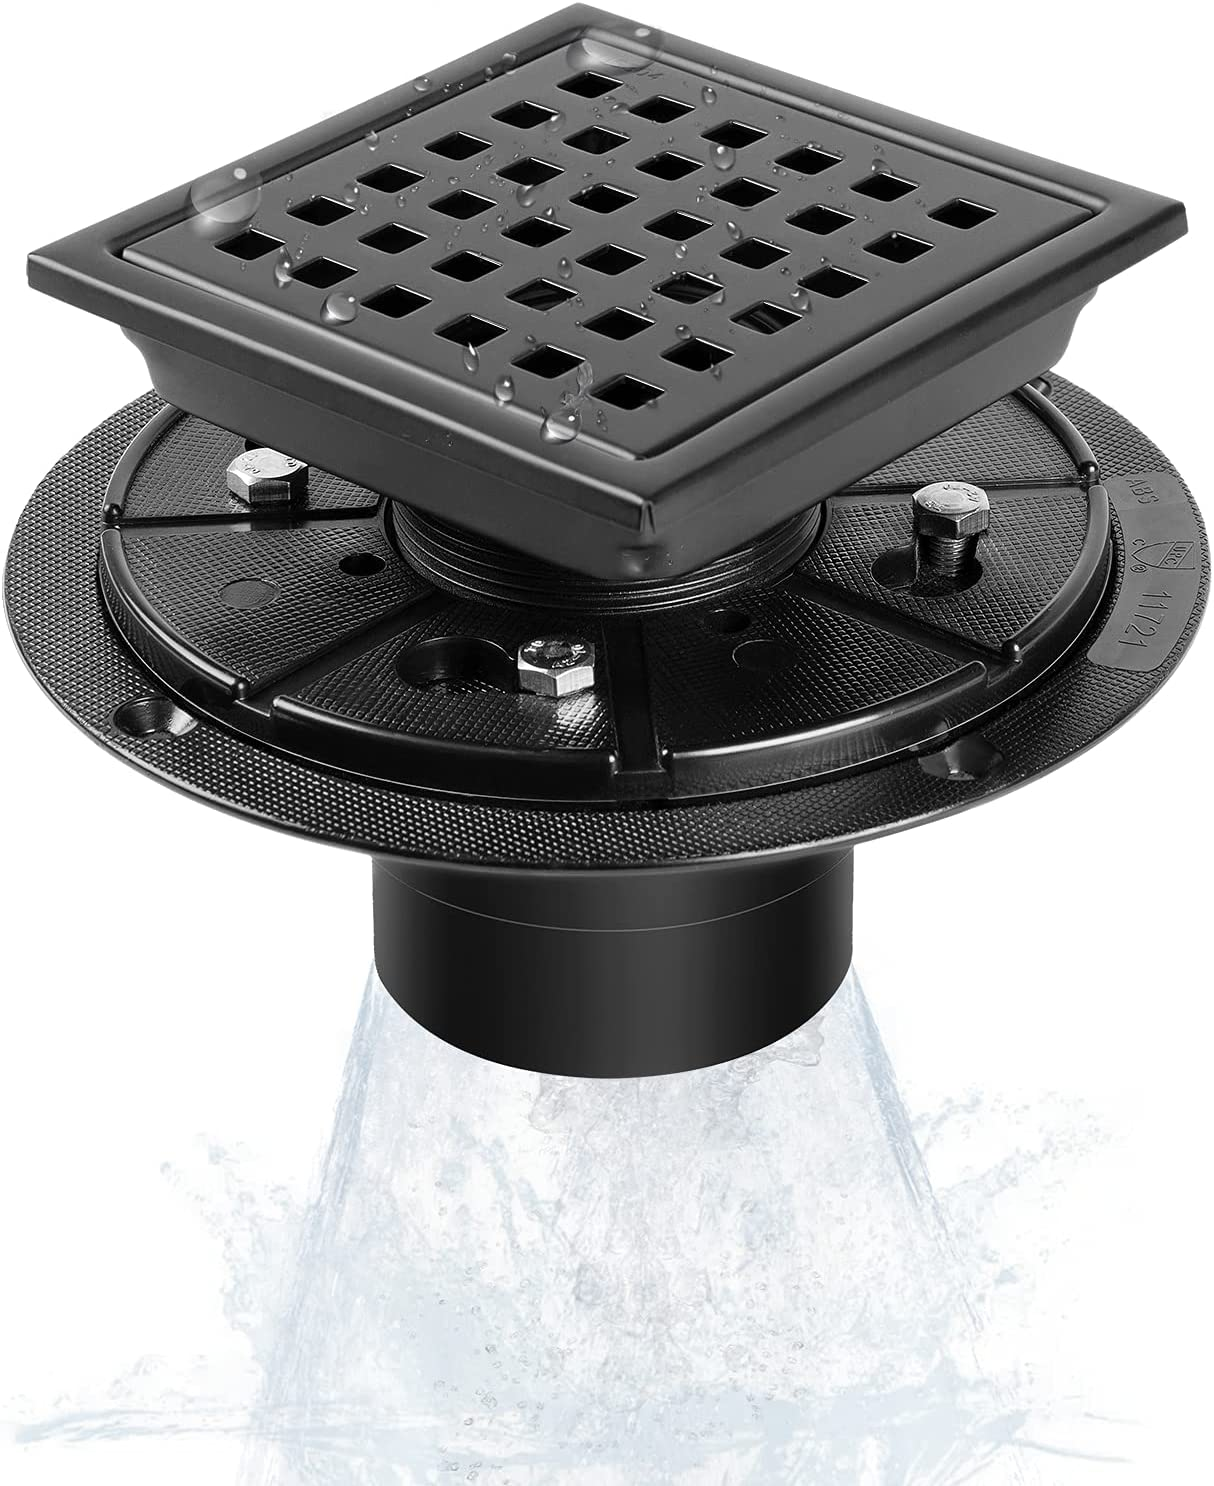 Shower Drain Tampa Mall MIRAFIT 4 Inch Flange with Bl Square Online limited product